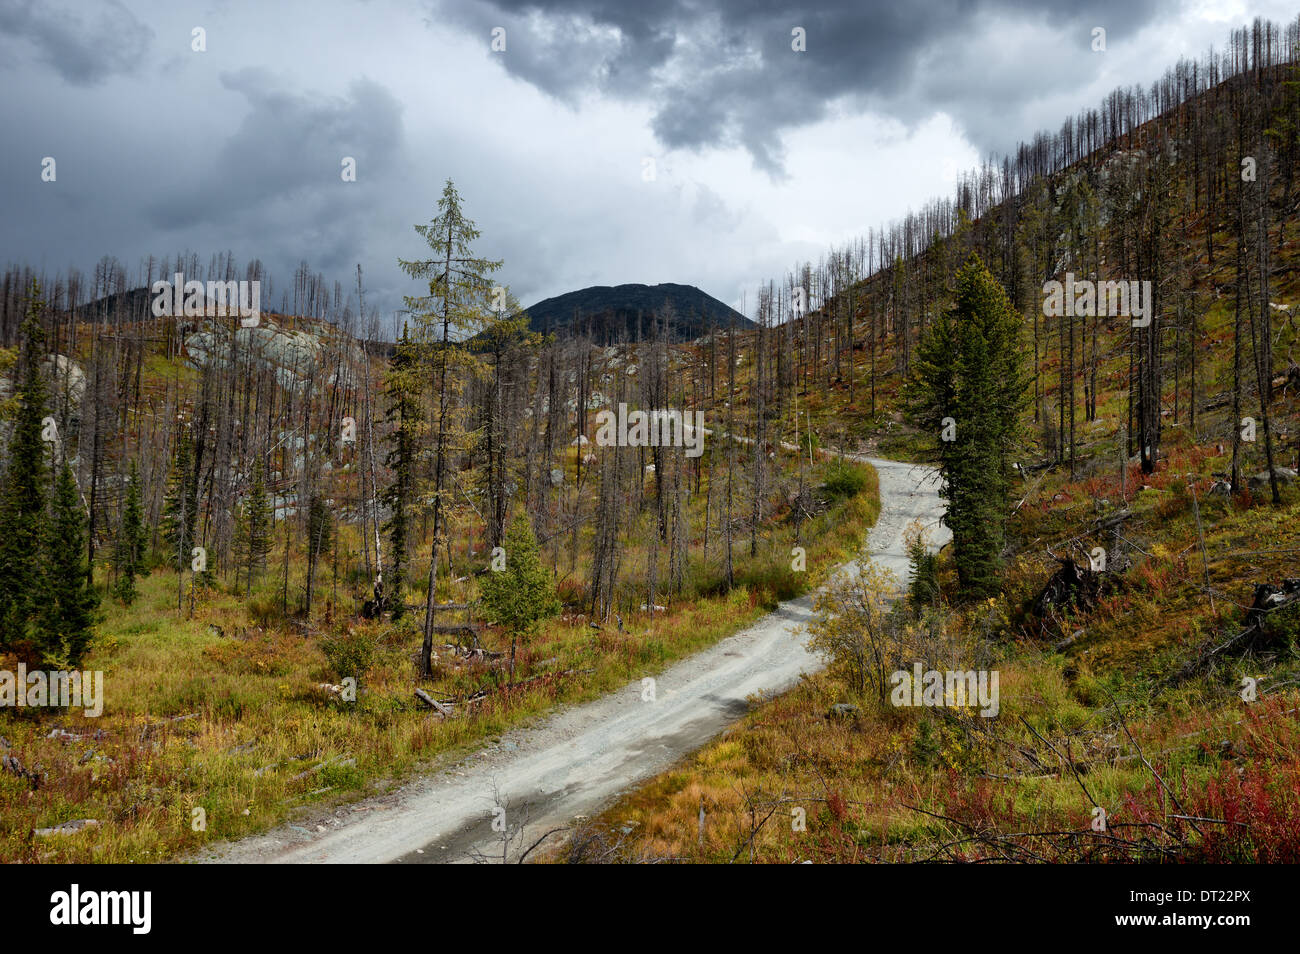 Forest recovering after a fire in the mountains of Altai, Kazakhstan - Stock Image